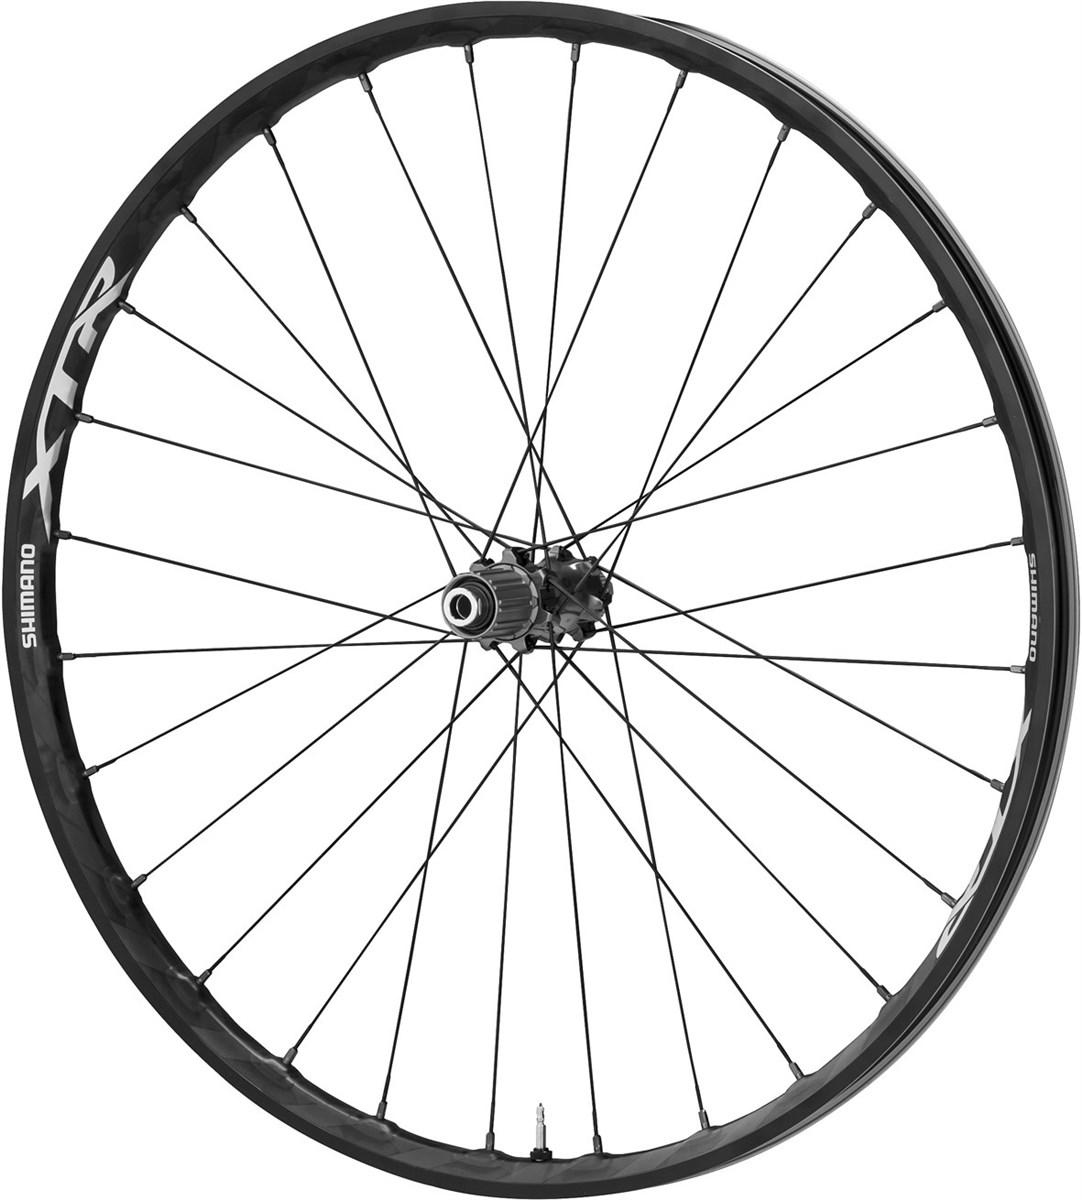 Shimano WH-M9000-TL XTR  XC Wheel - Q / R 135 mm Axle -  29er Carbon Clincher -  Rear